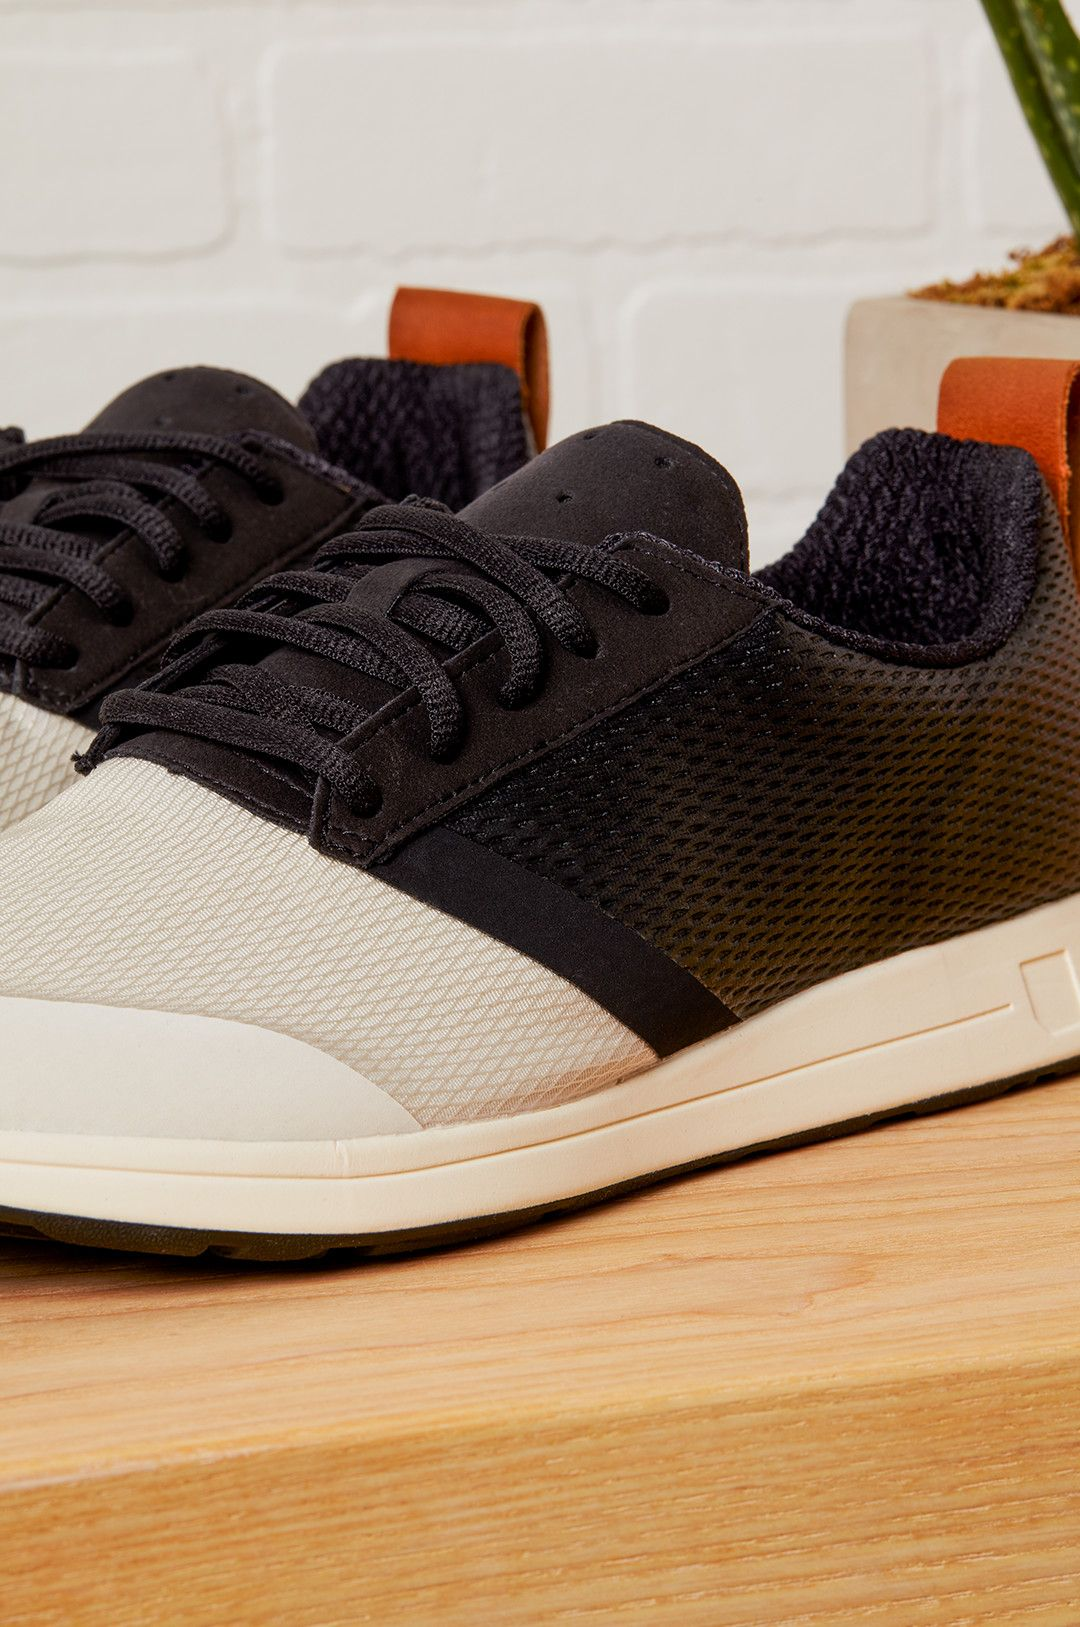 The Very Stylish Sneaker for Hard Gym Workouts